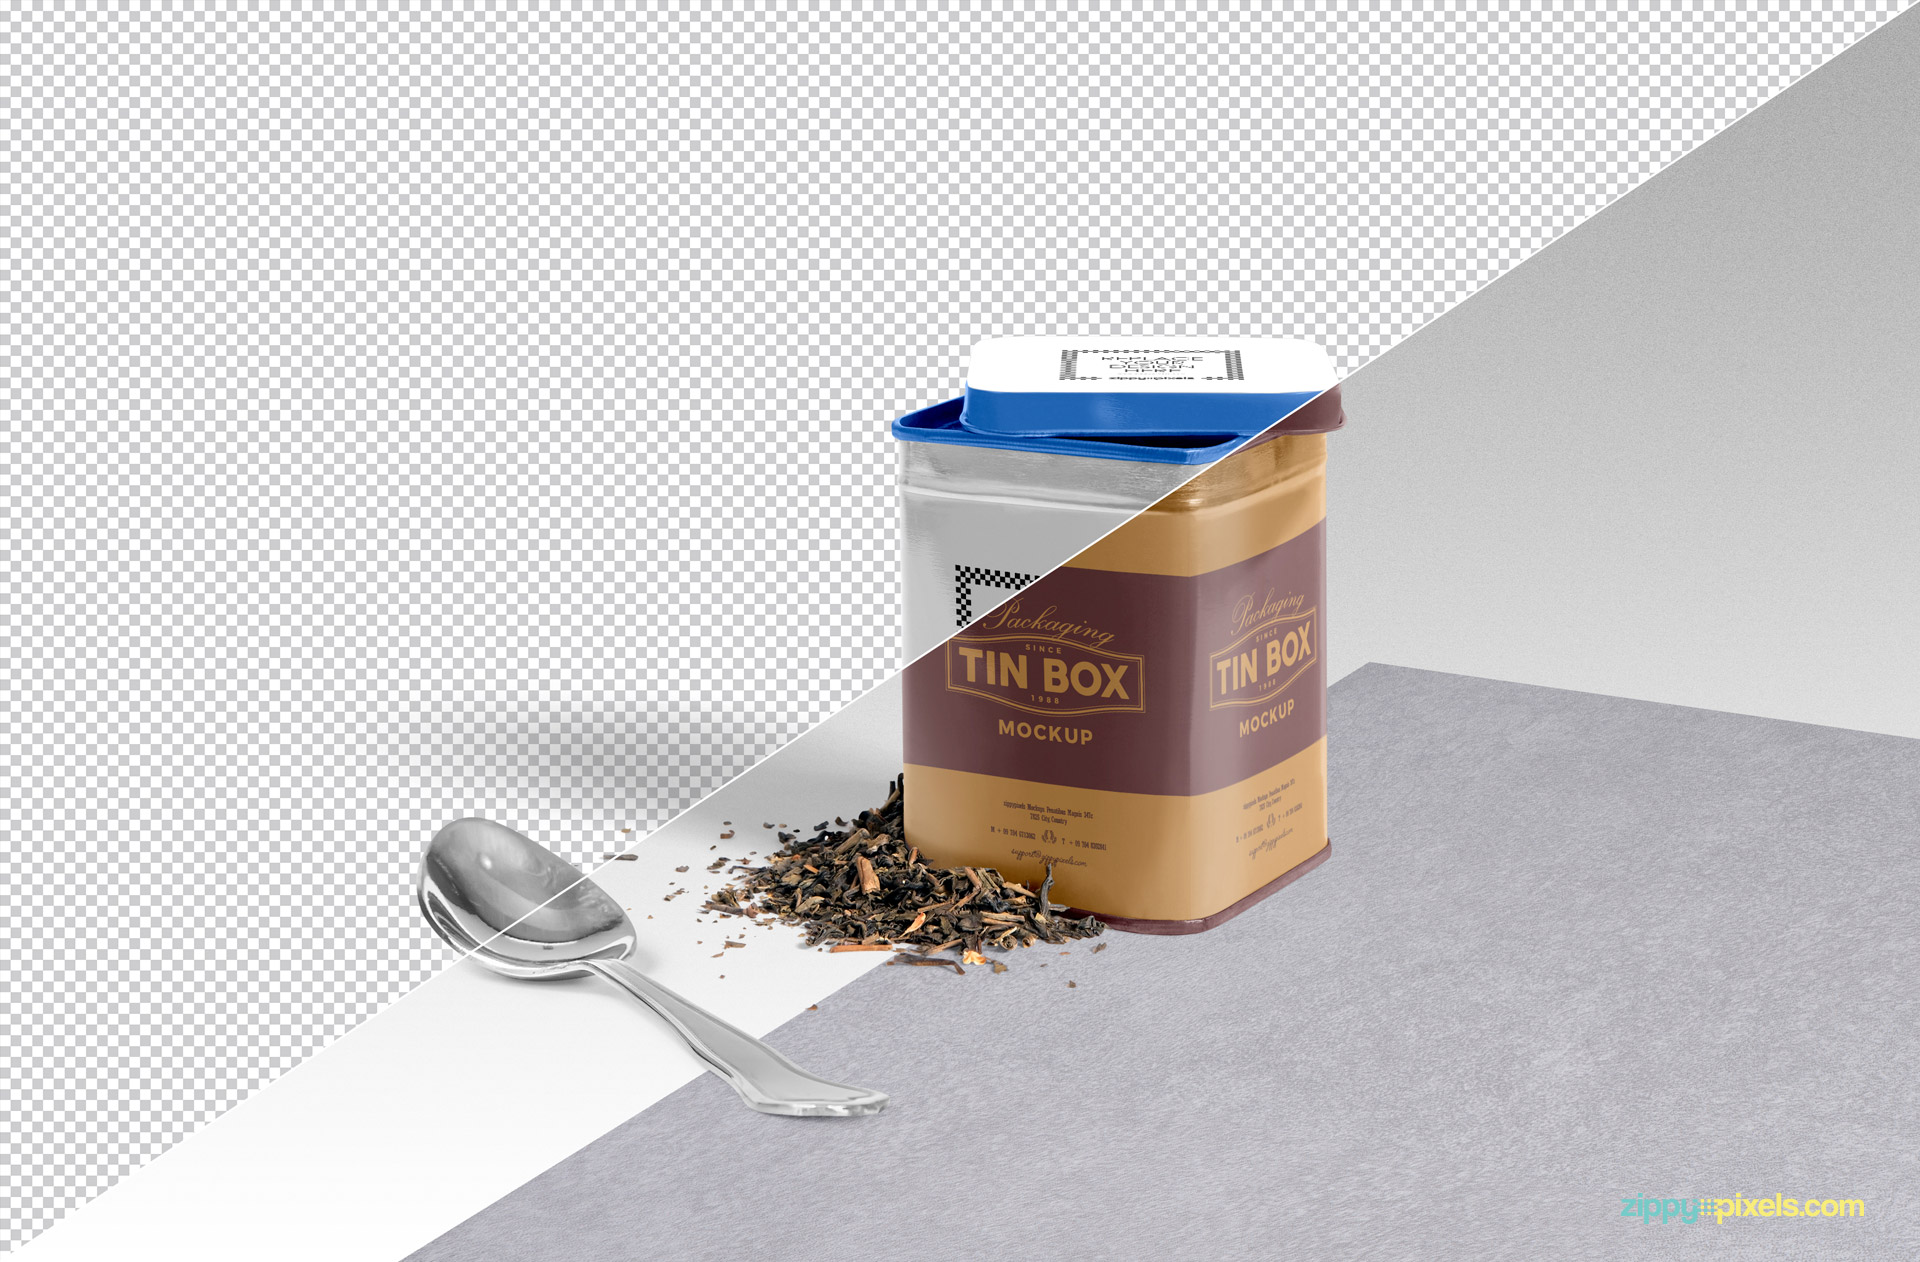 Free tin box mockup with changeable background option